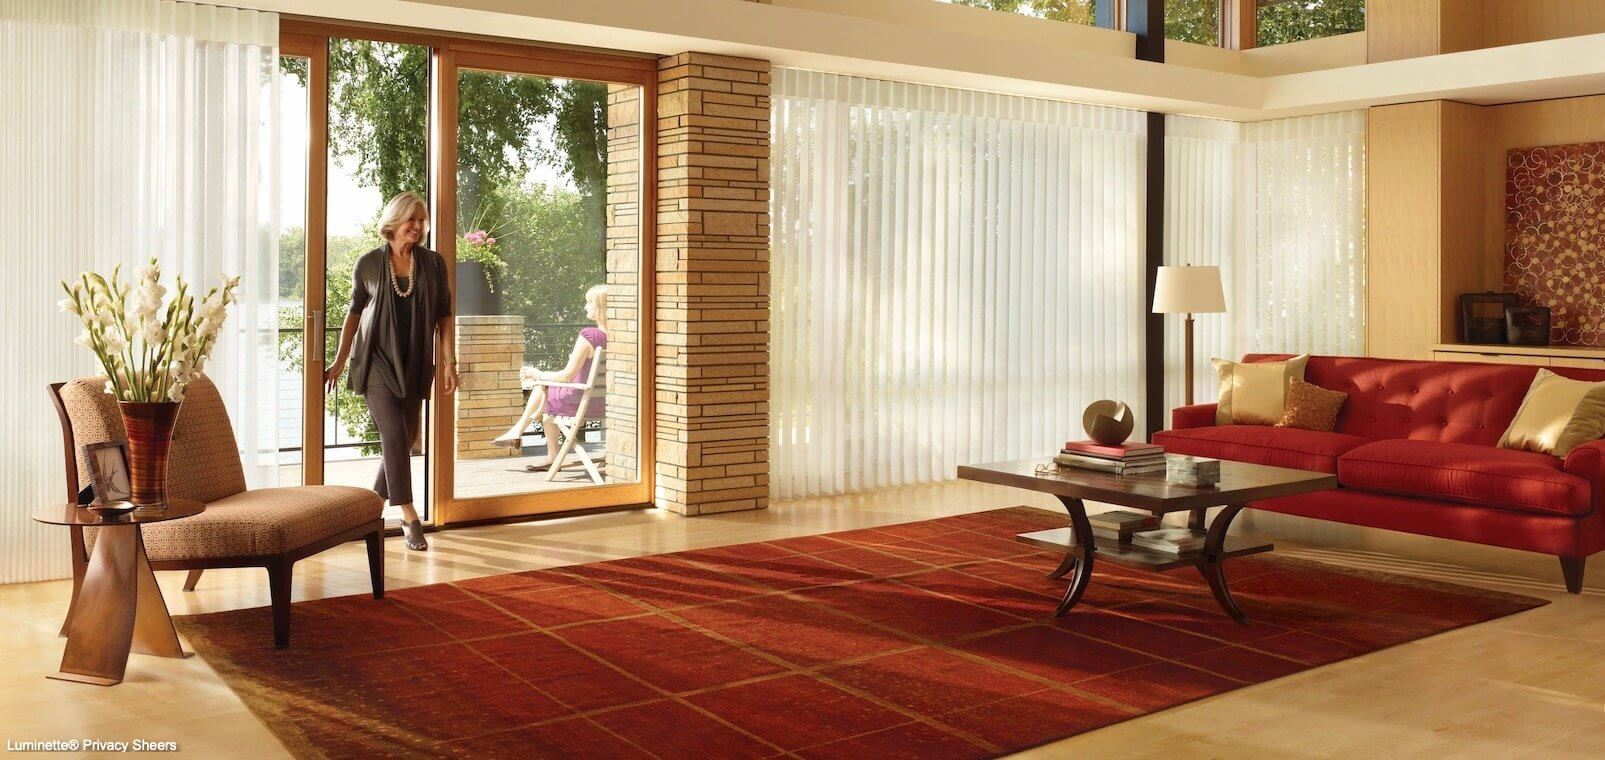 Luminette Privacy Sheers - Stria in Living Room